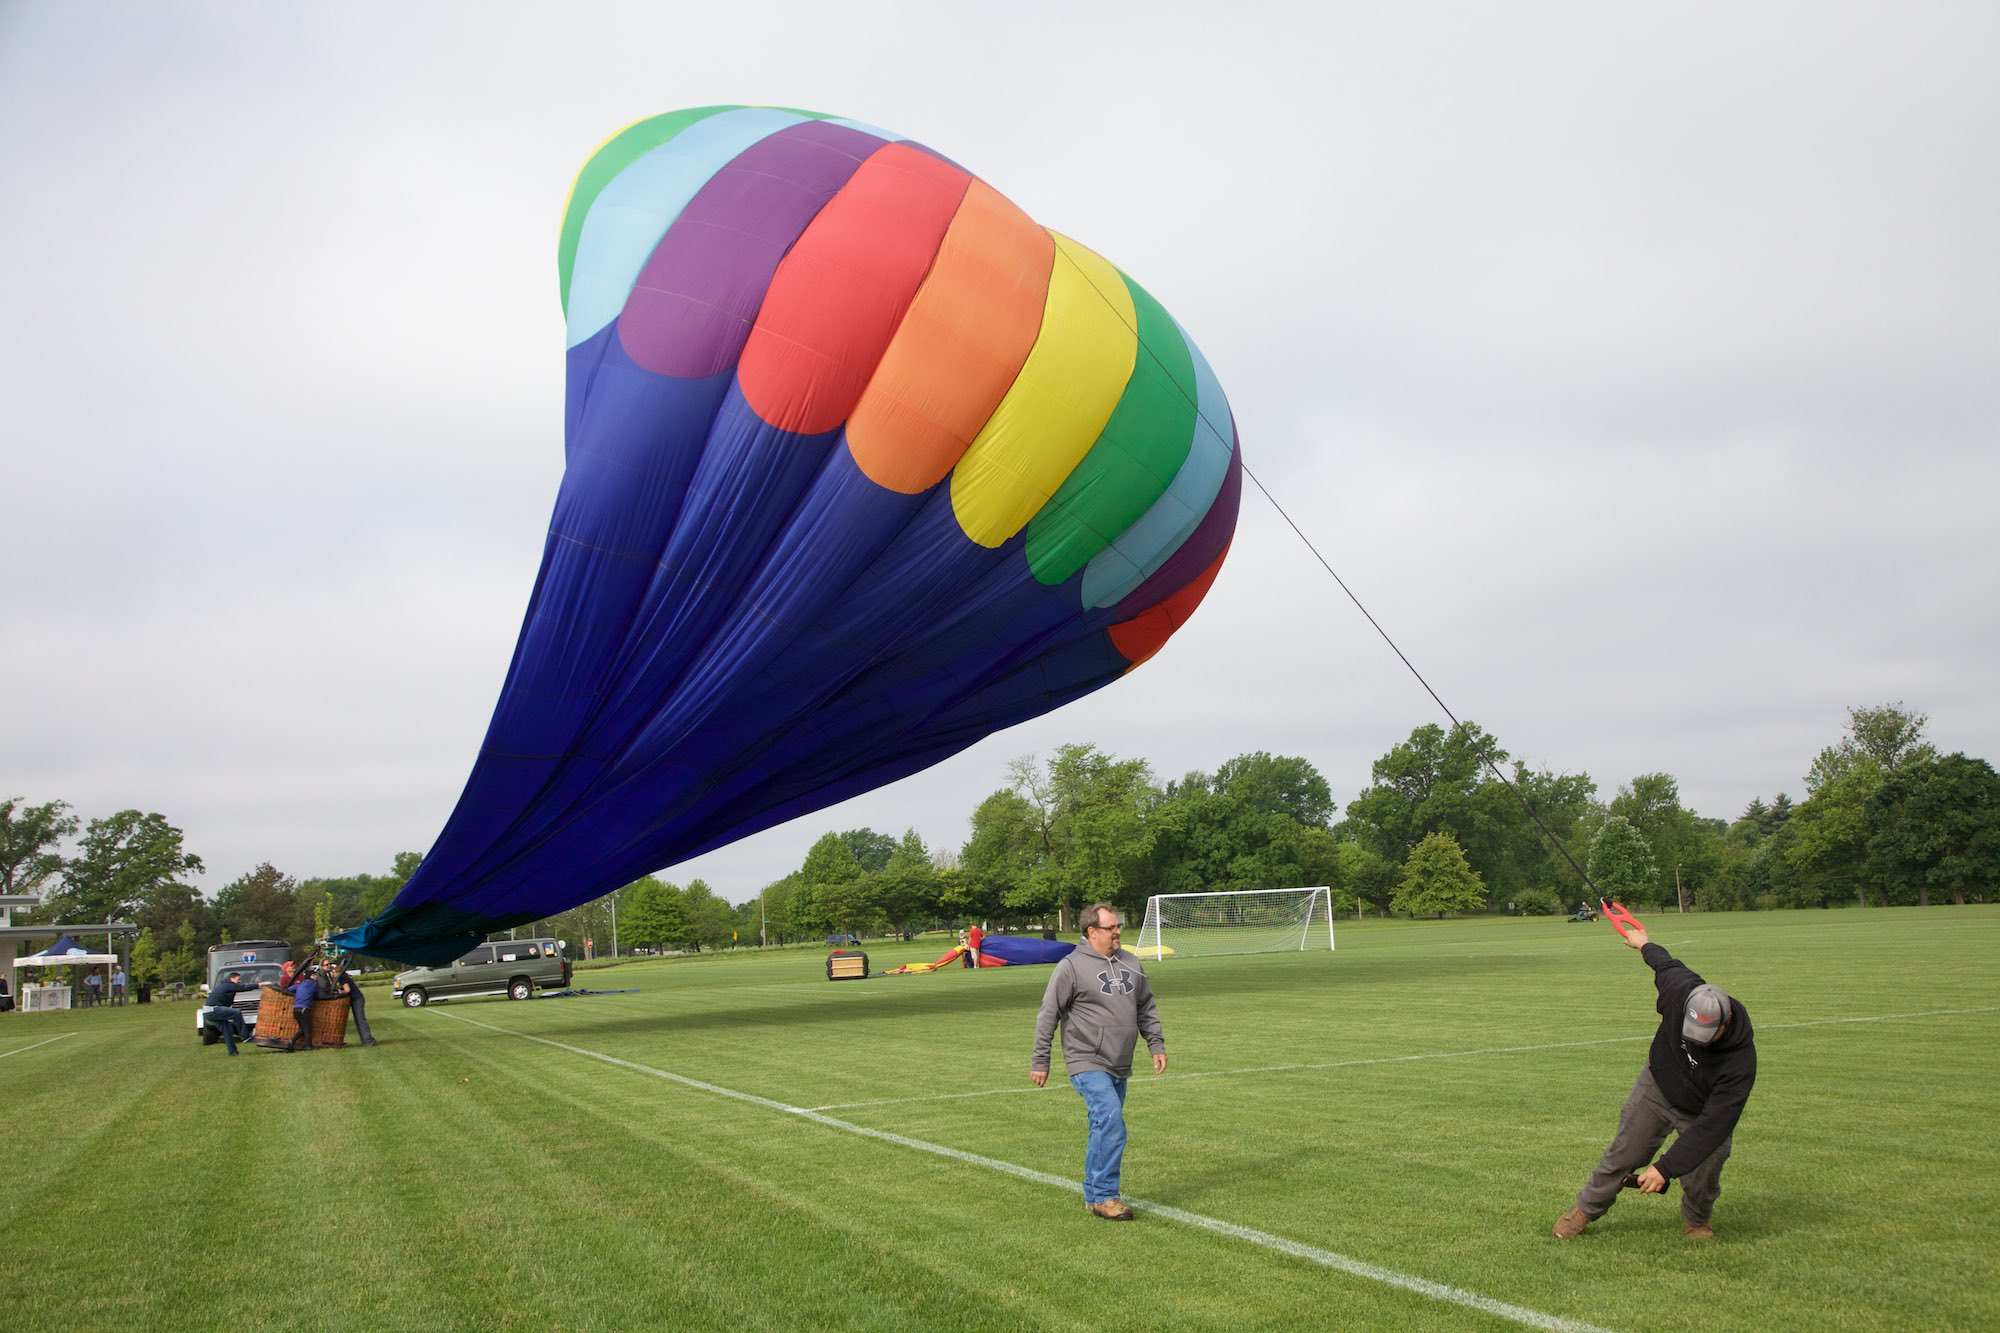 The crew of the balloon Jambo say goodby at the end of a test flight. Click on this image for more photos.